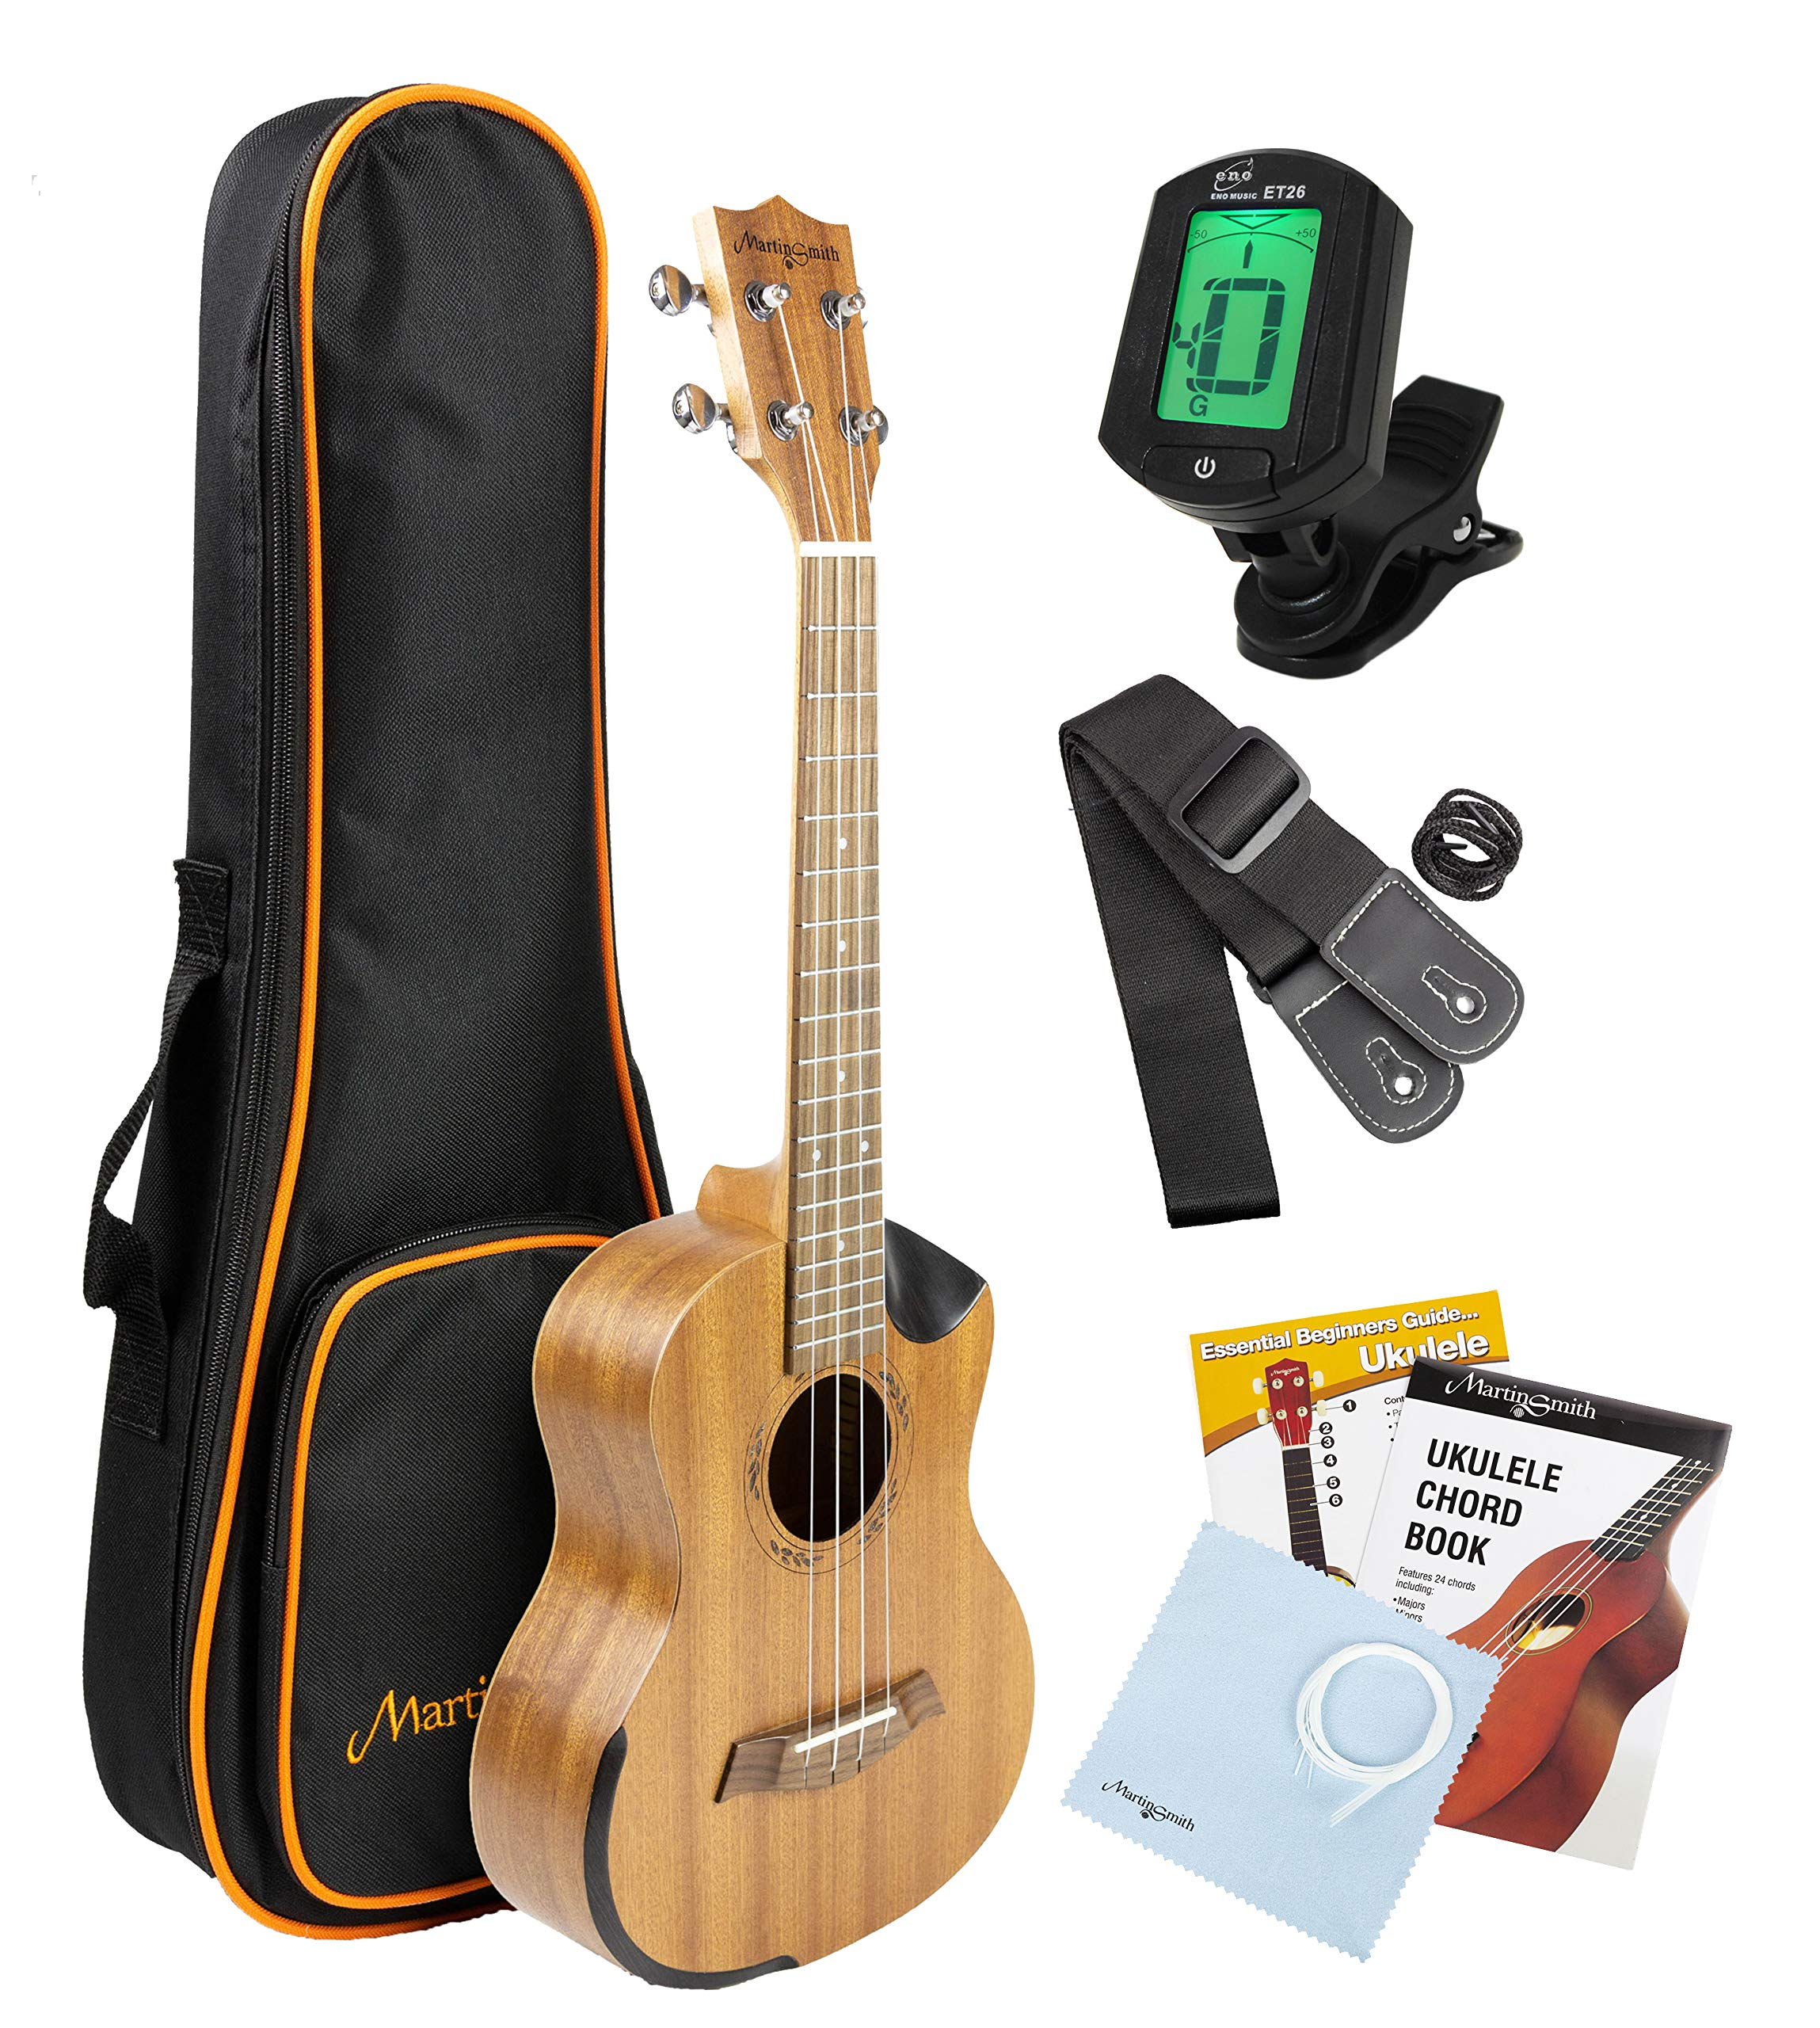 Martin Smith Tenor Ukulele Starter Kit with Aquila Strings - Includes Online Lessons, Tuner, Bag, Strap & Spare Strings